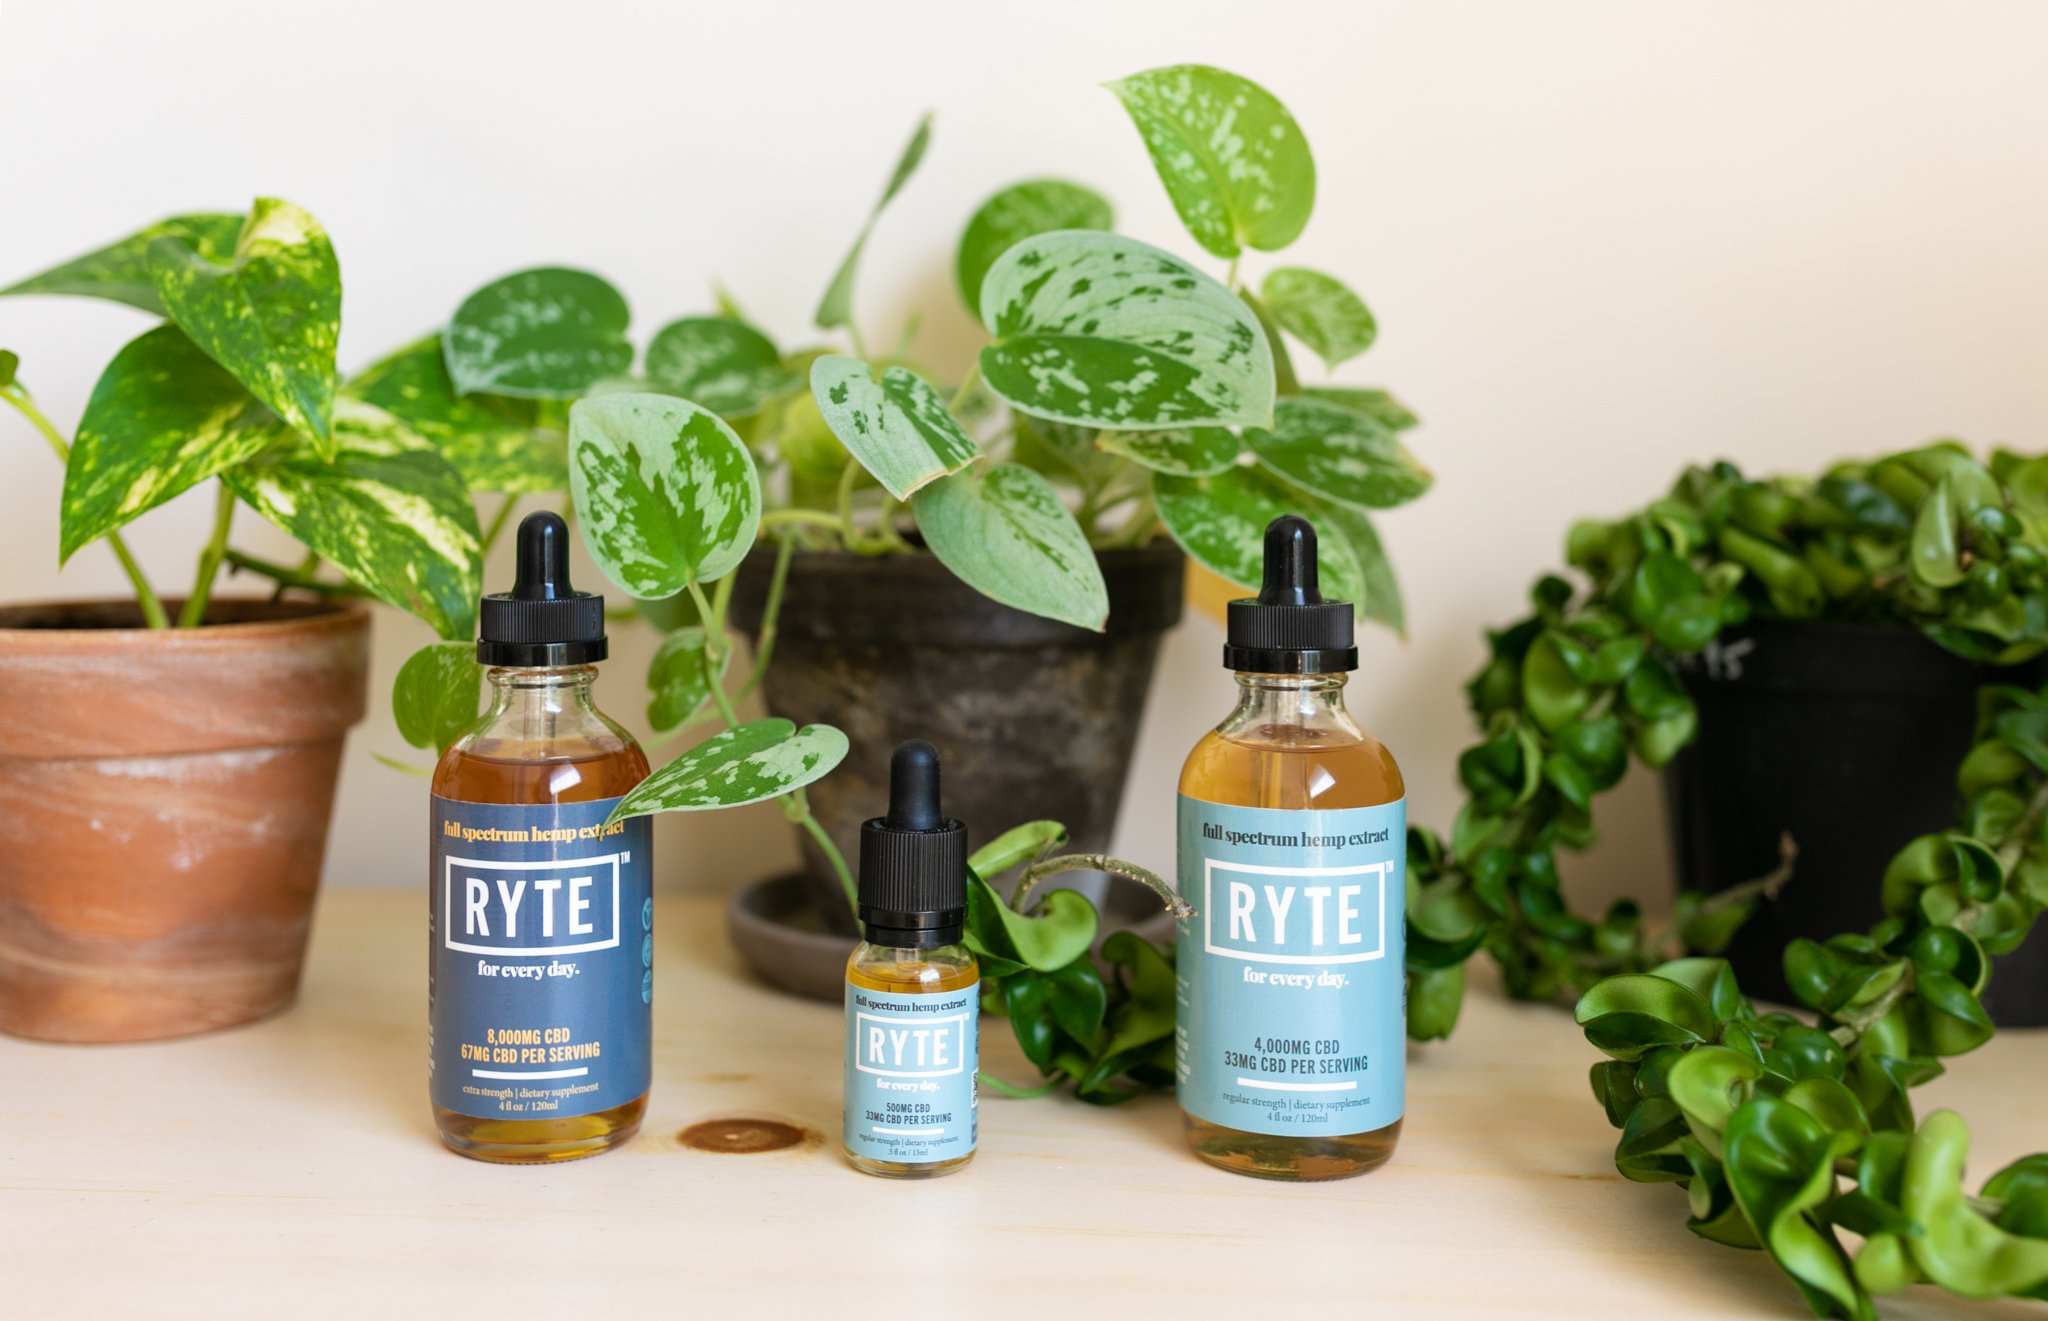 Ryte Oil with Plants